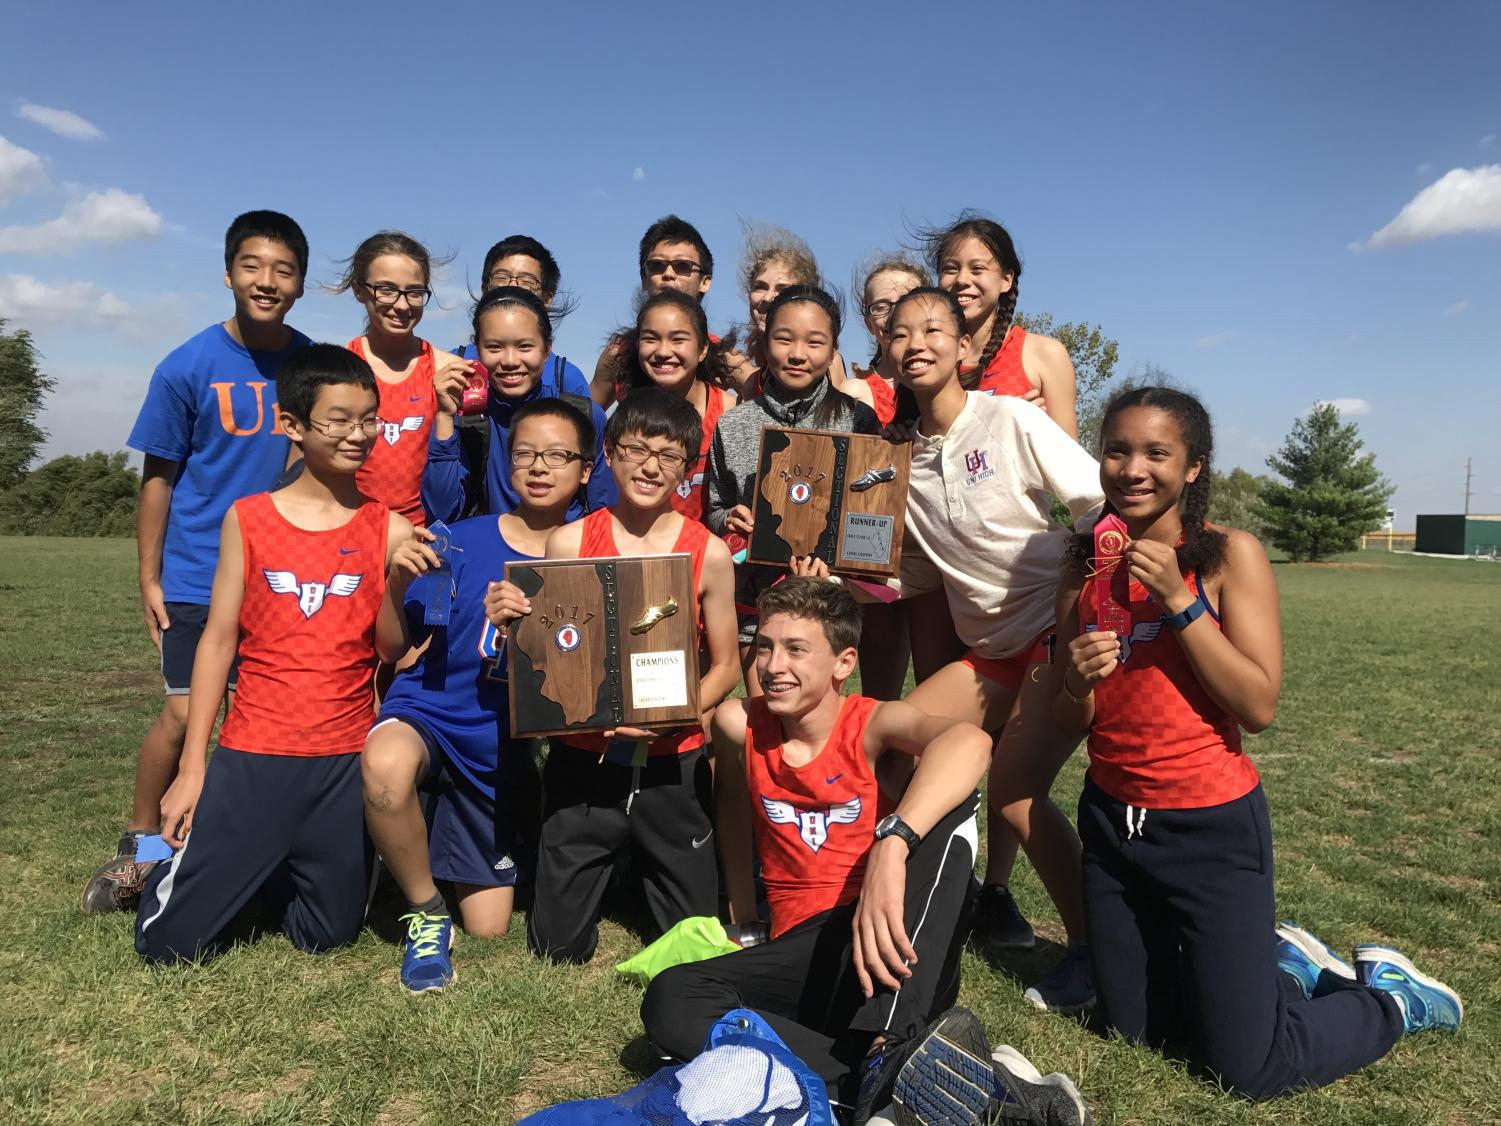 The subbie teams with their Sectional plaques. The boys finished in 1st place, and the girls finished in 2nd. (Photo courtesy of Sumi Yoneji)